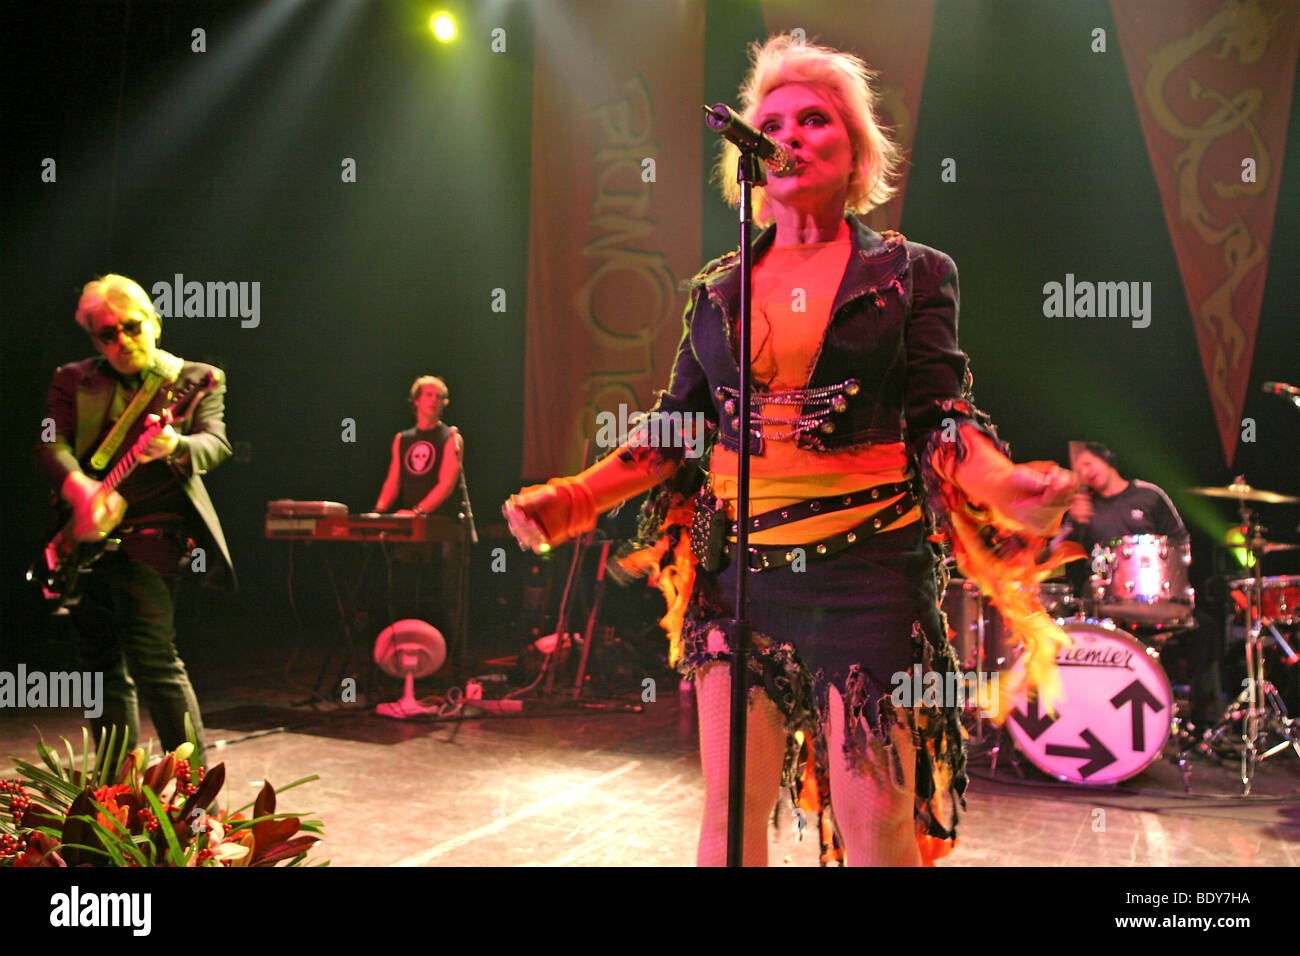 BLONDIE - US rock group with Debbie Harry  about 2003 - Stock Image